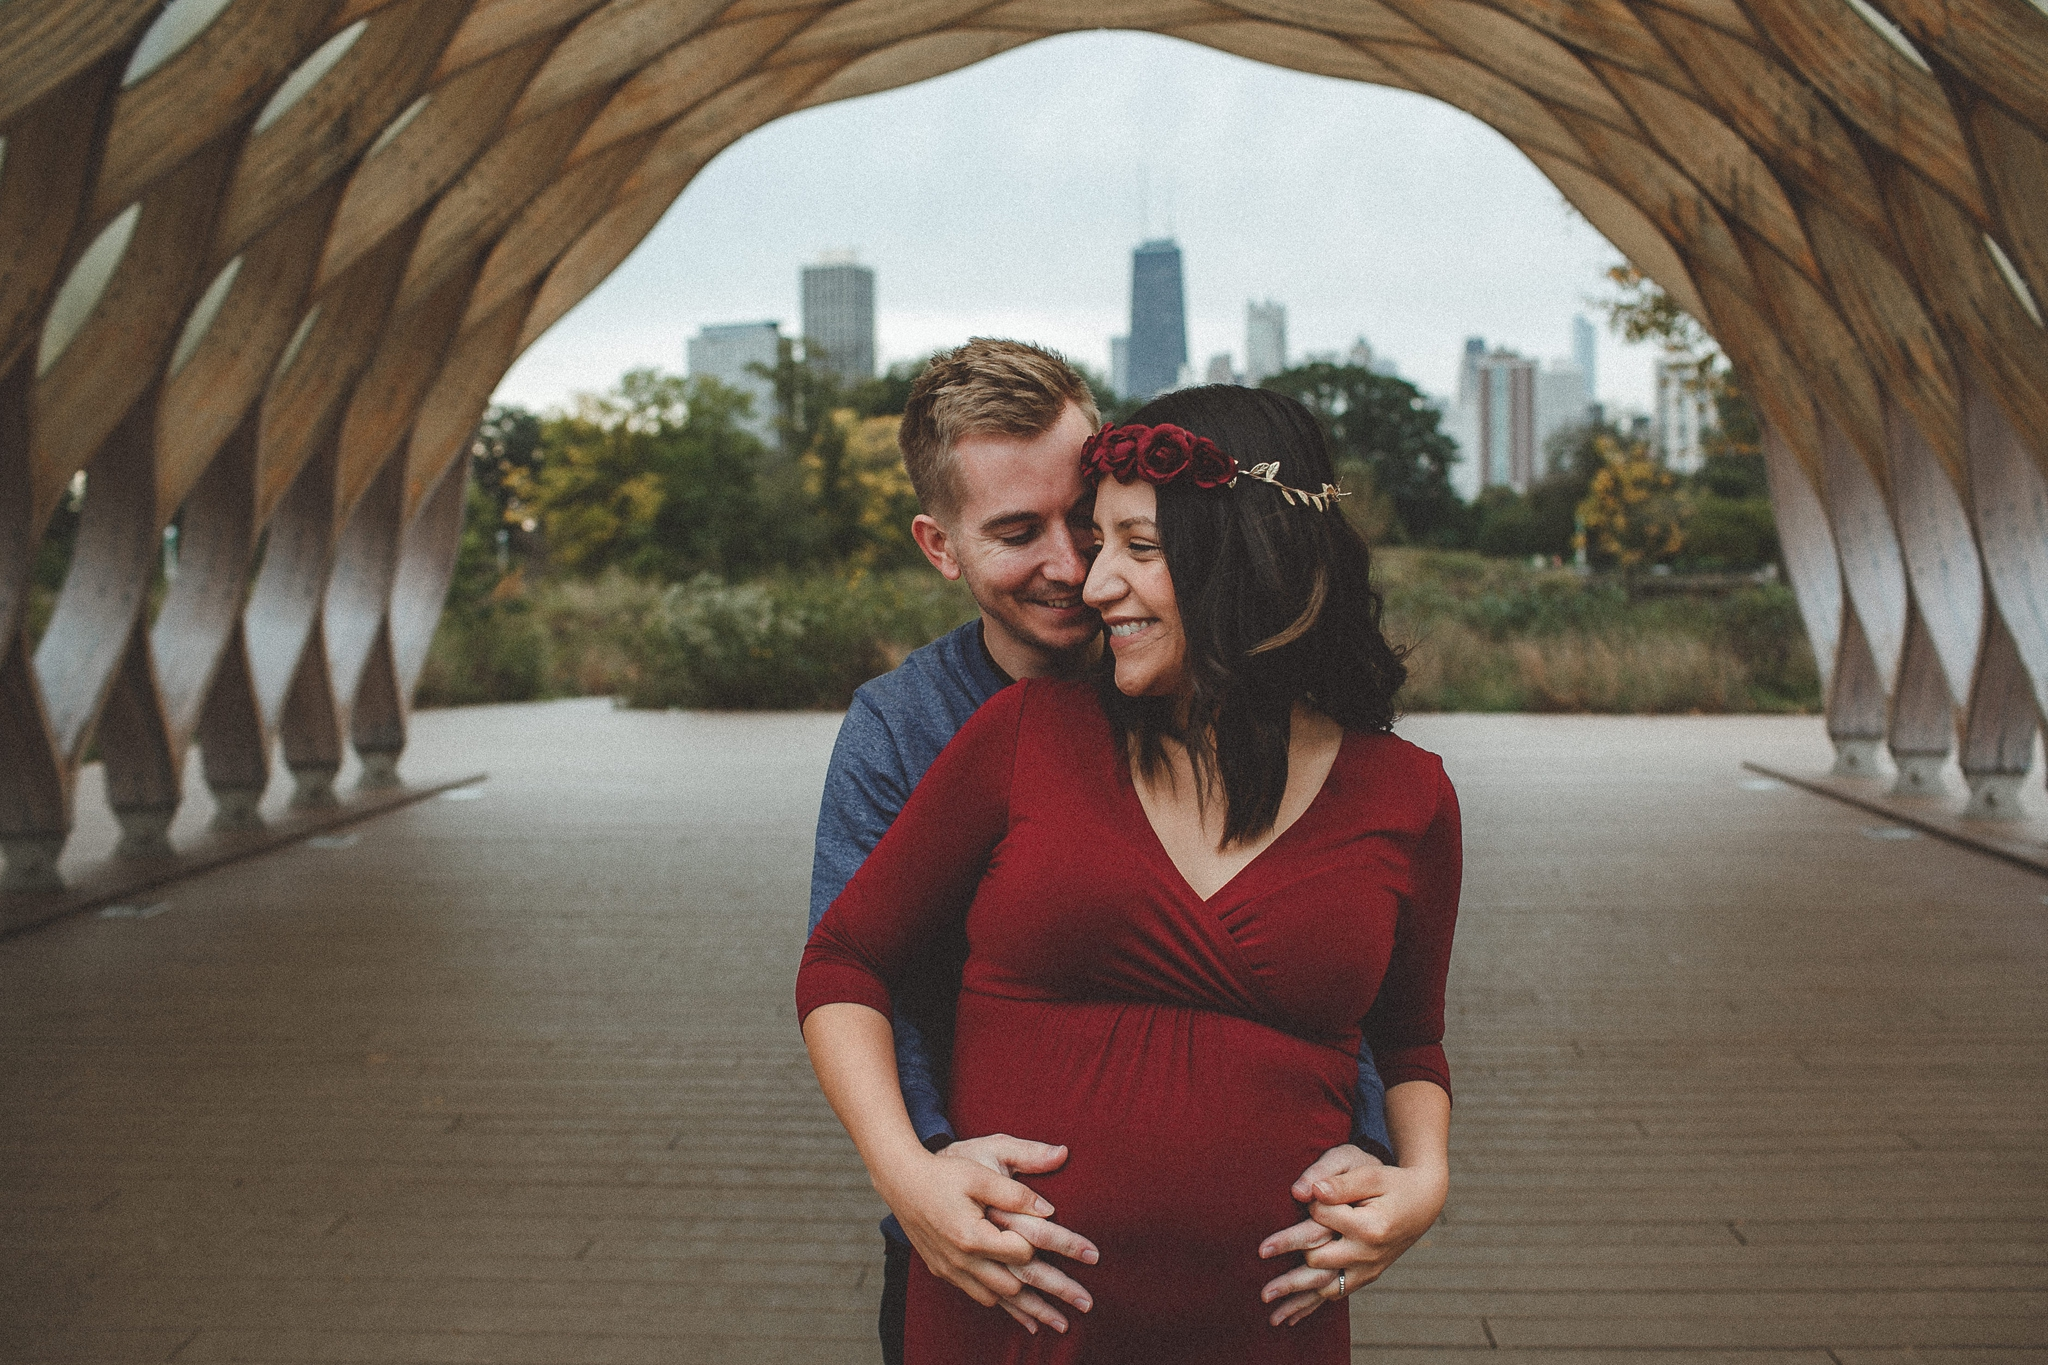 chicago_lincoln_park_family_maternity_photograper_0003.jpg